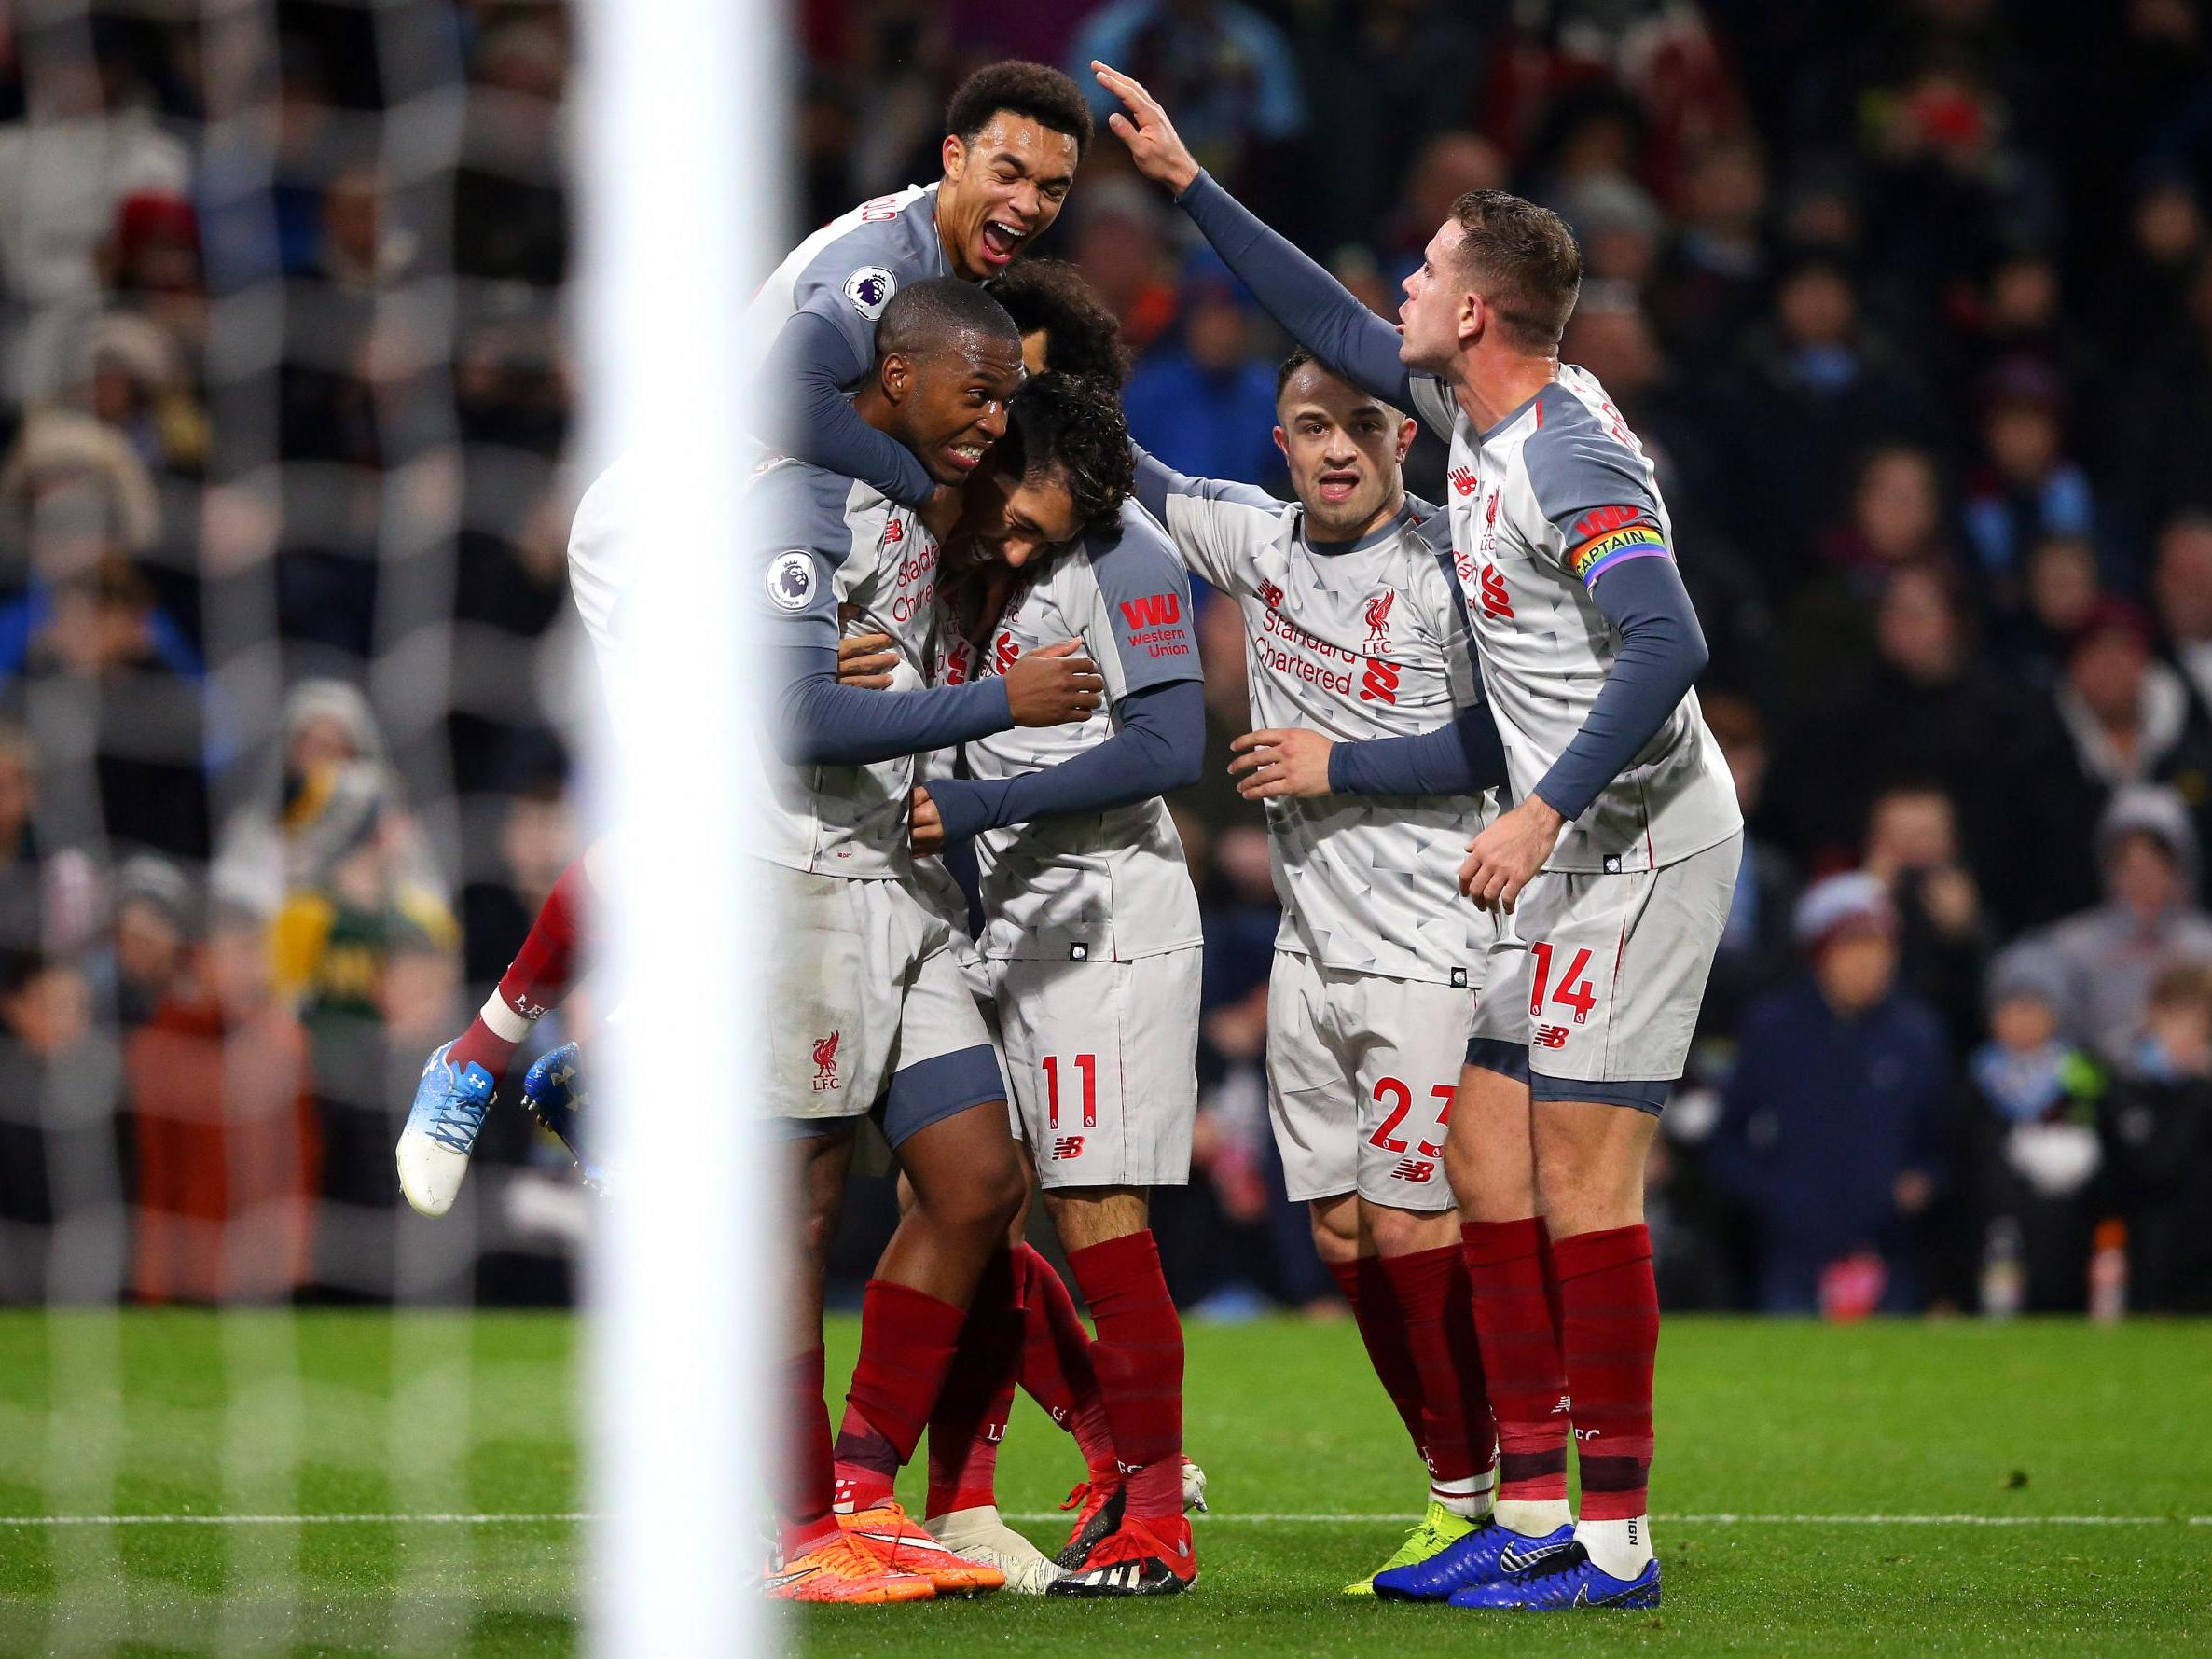 Liverpool don't care about Manchester City's results in Premier League title race, insists Jordan Henderson